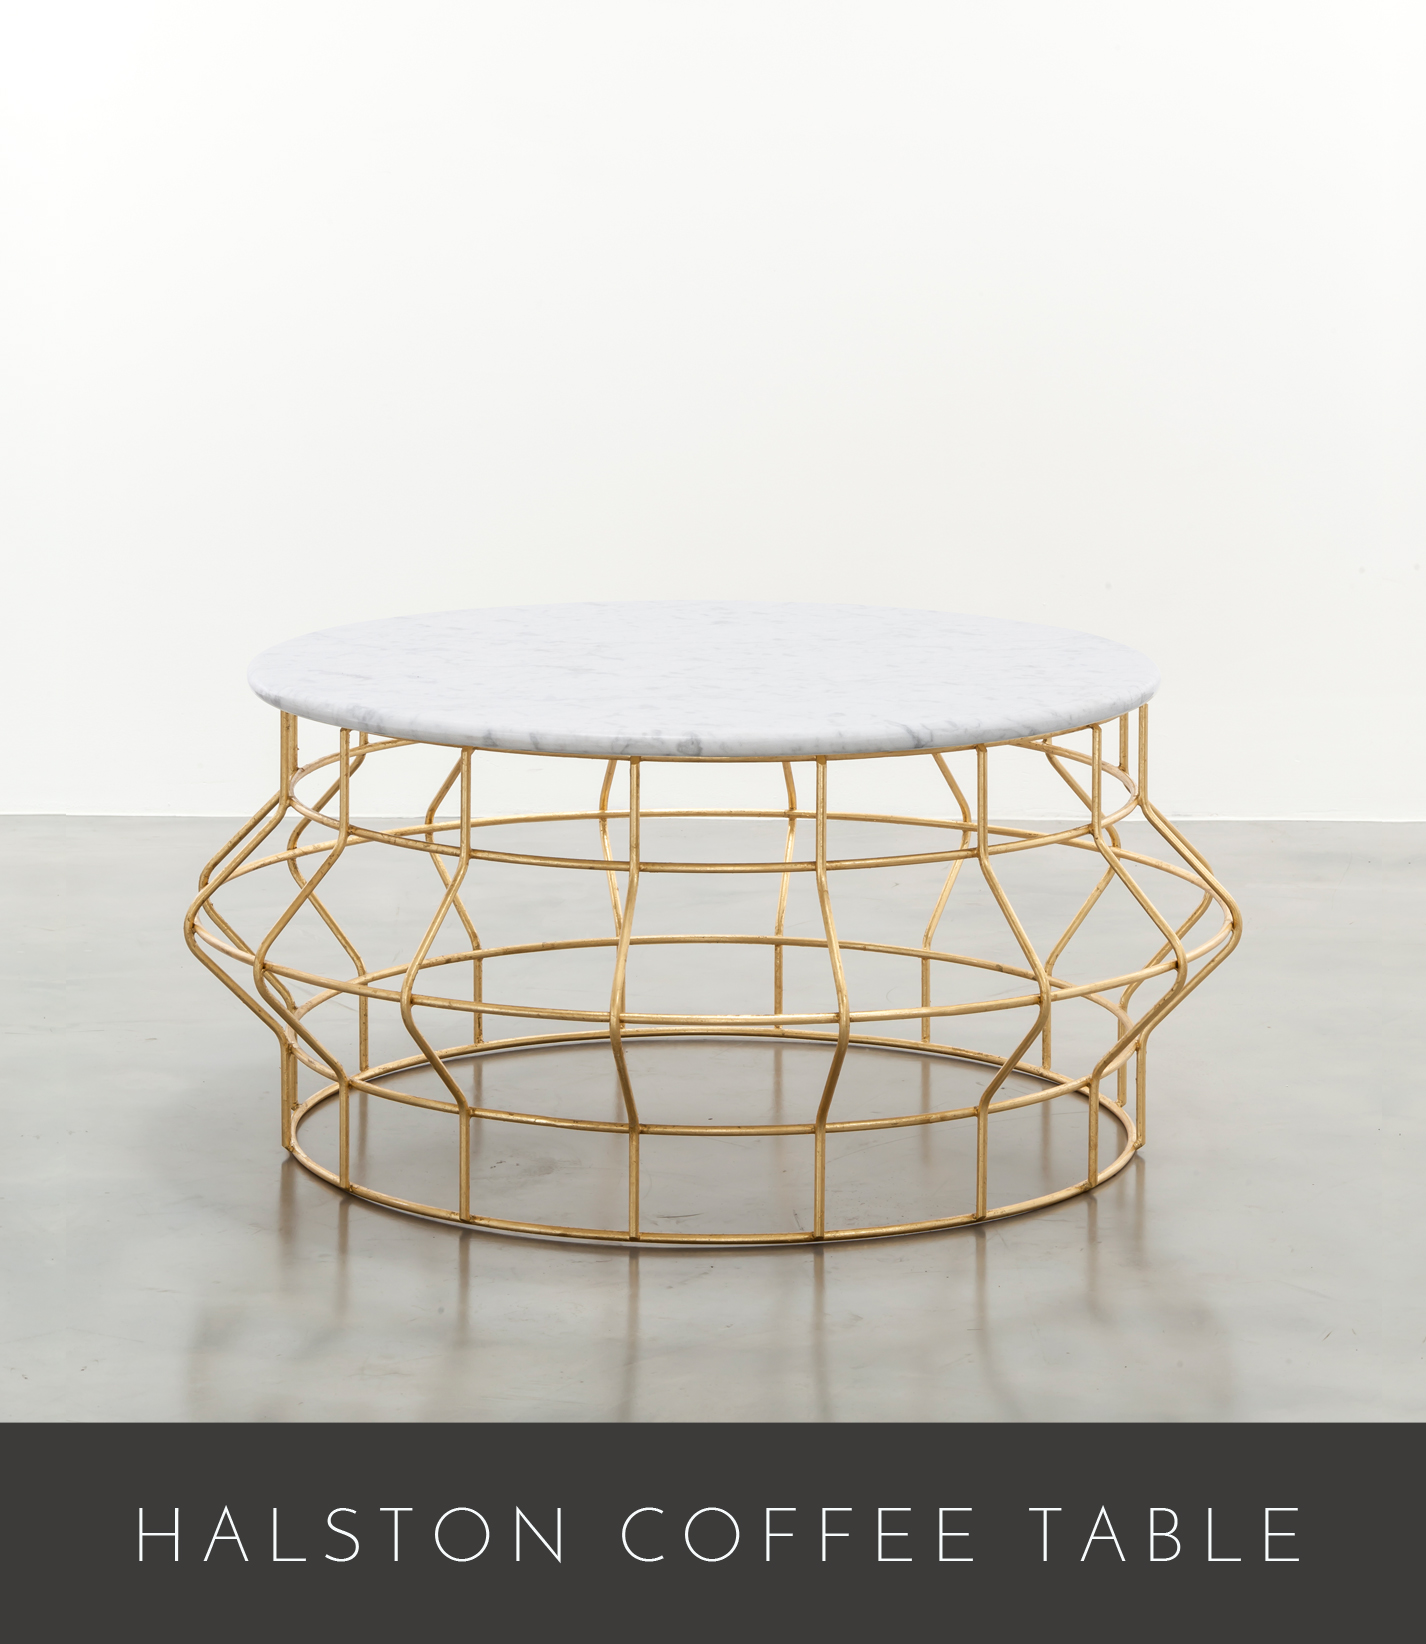 High Point Market Style Report for 2016 high point market style report High Point Market Style Report for 2016 Halston Coffee Table Webcrop1